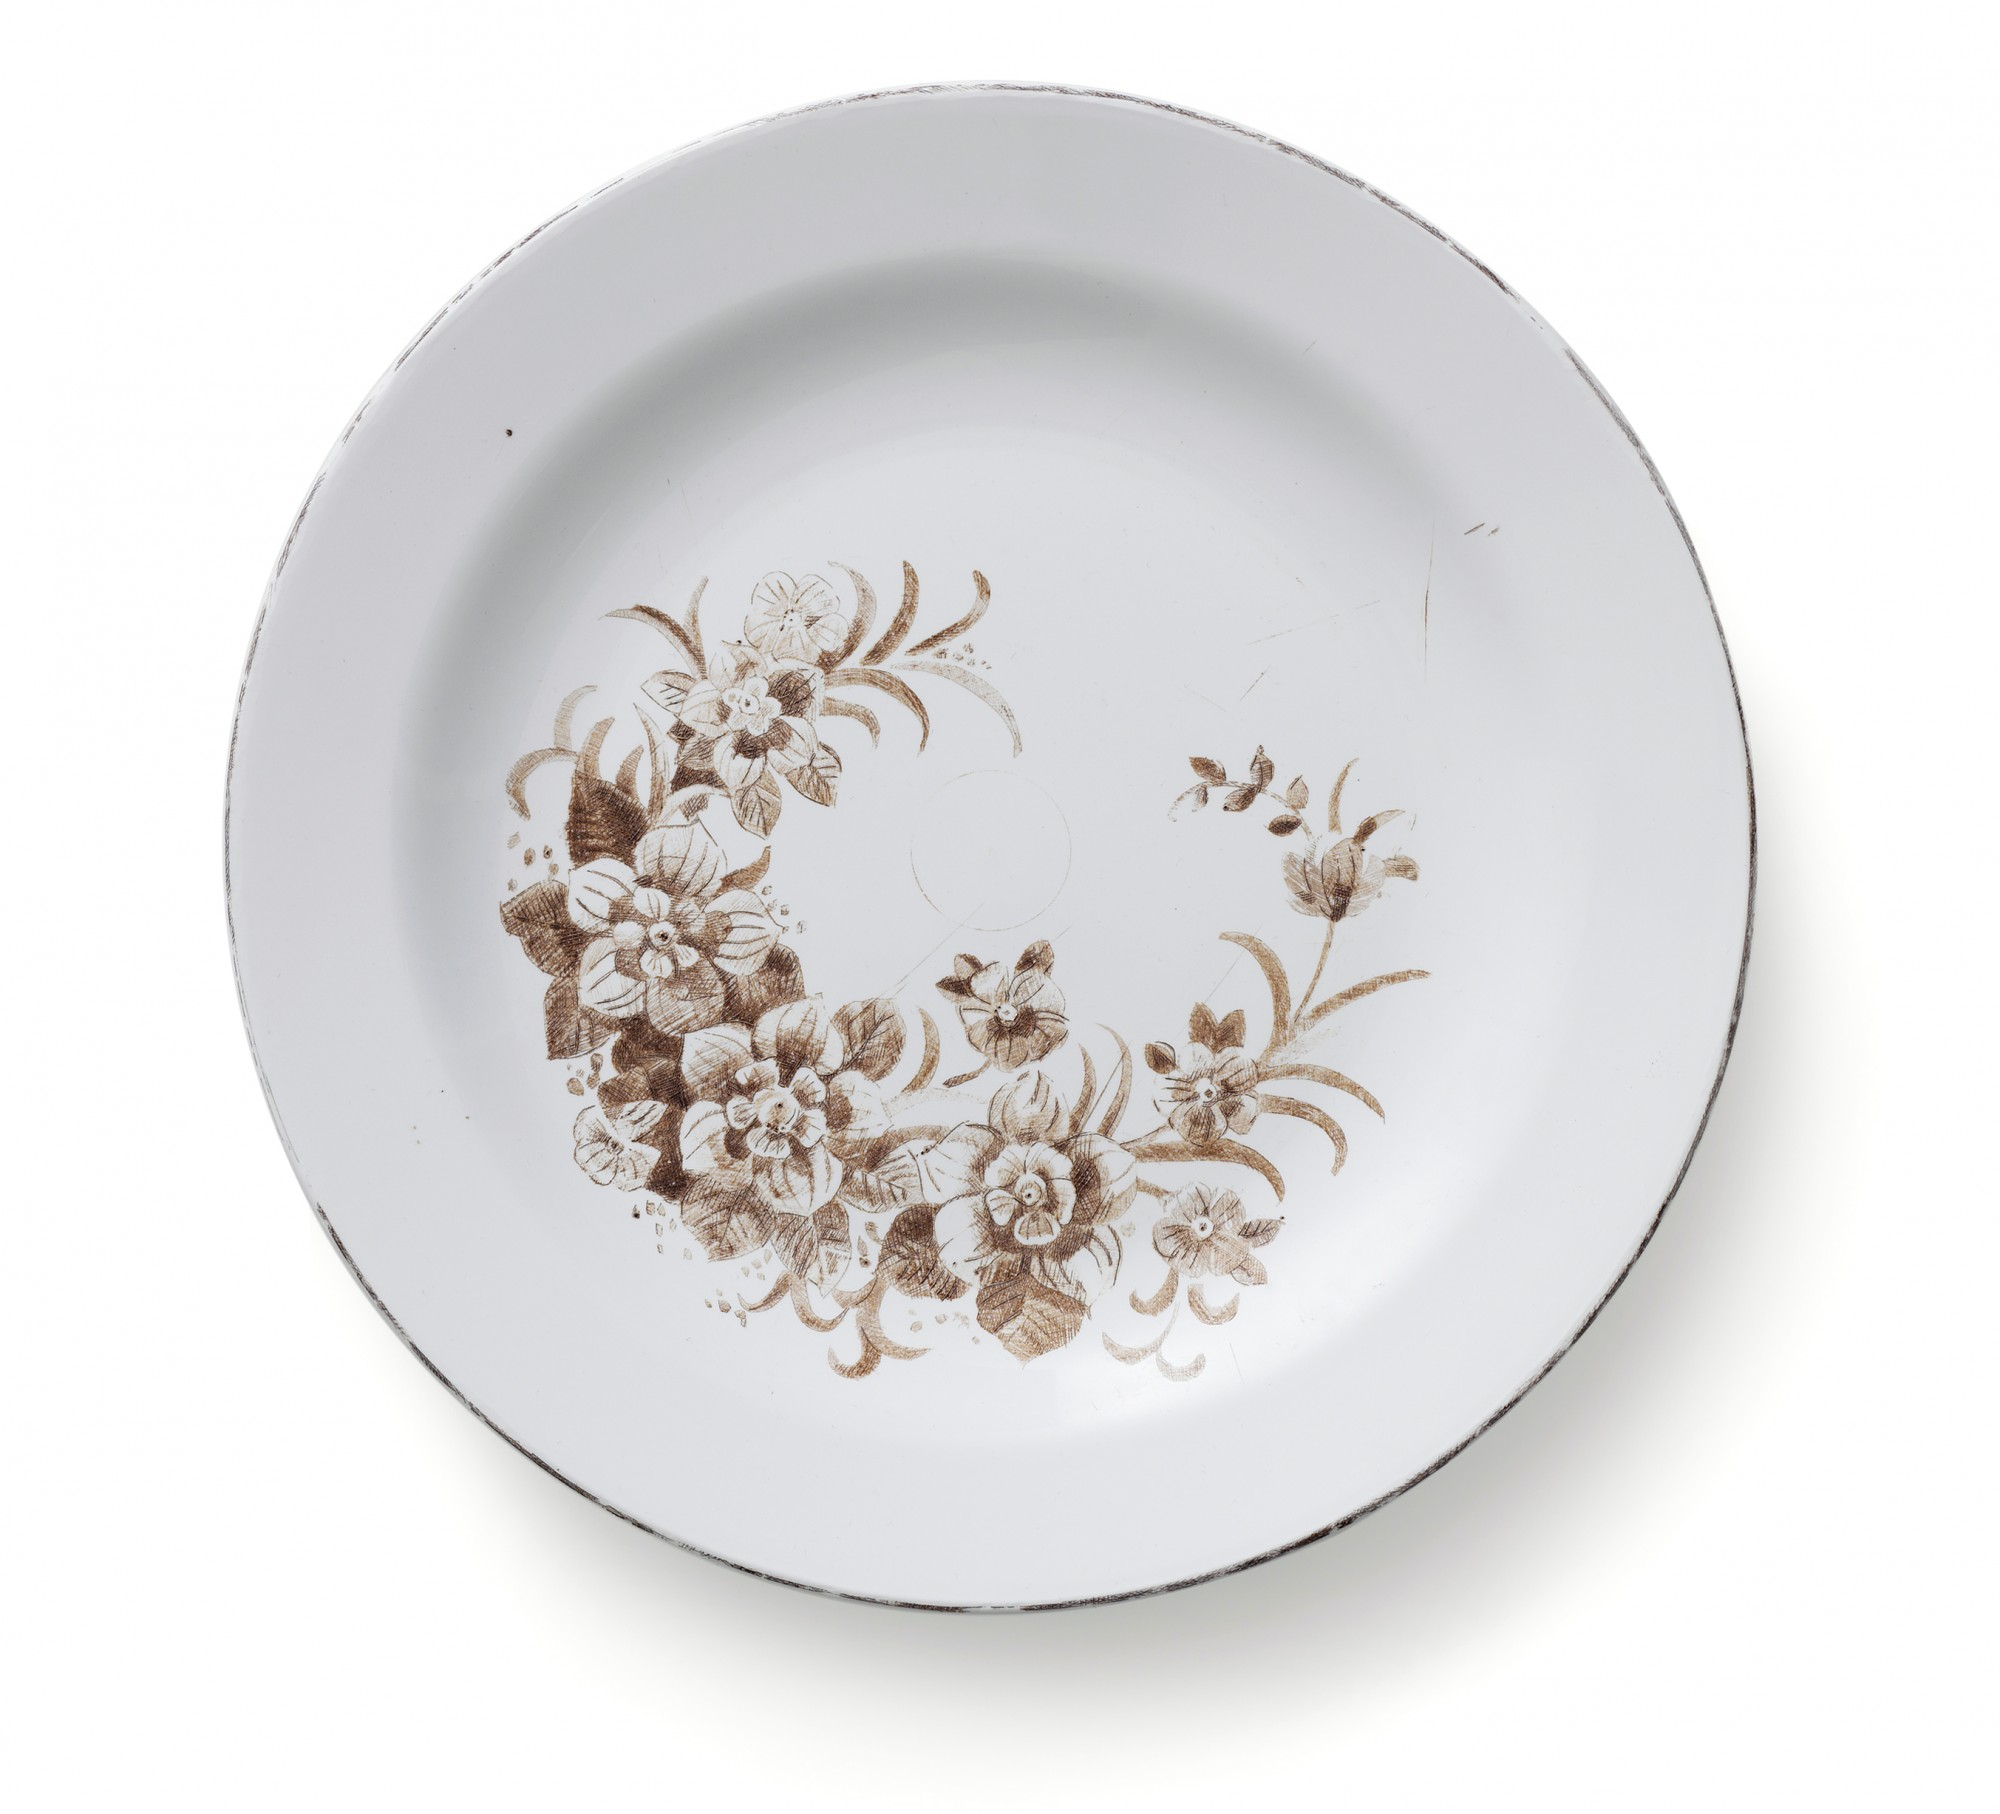 From the series Damaged Goods, 2012. Reworked plastic plate. Ø 23,5 cm